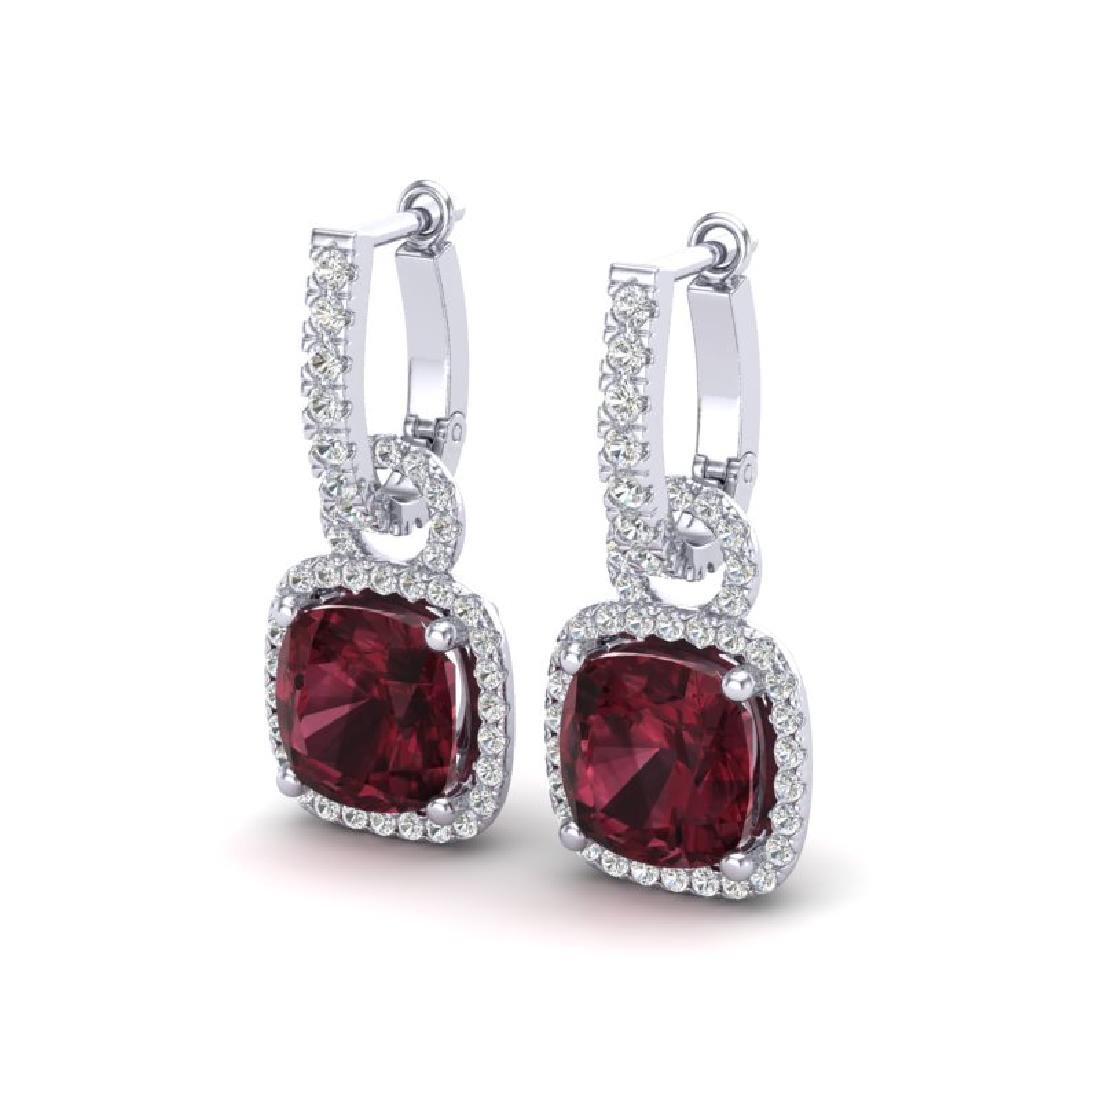 7 CTW Garnet & Micro Pave VS/SI Diamond Earrings 18K